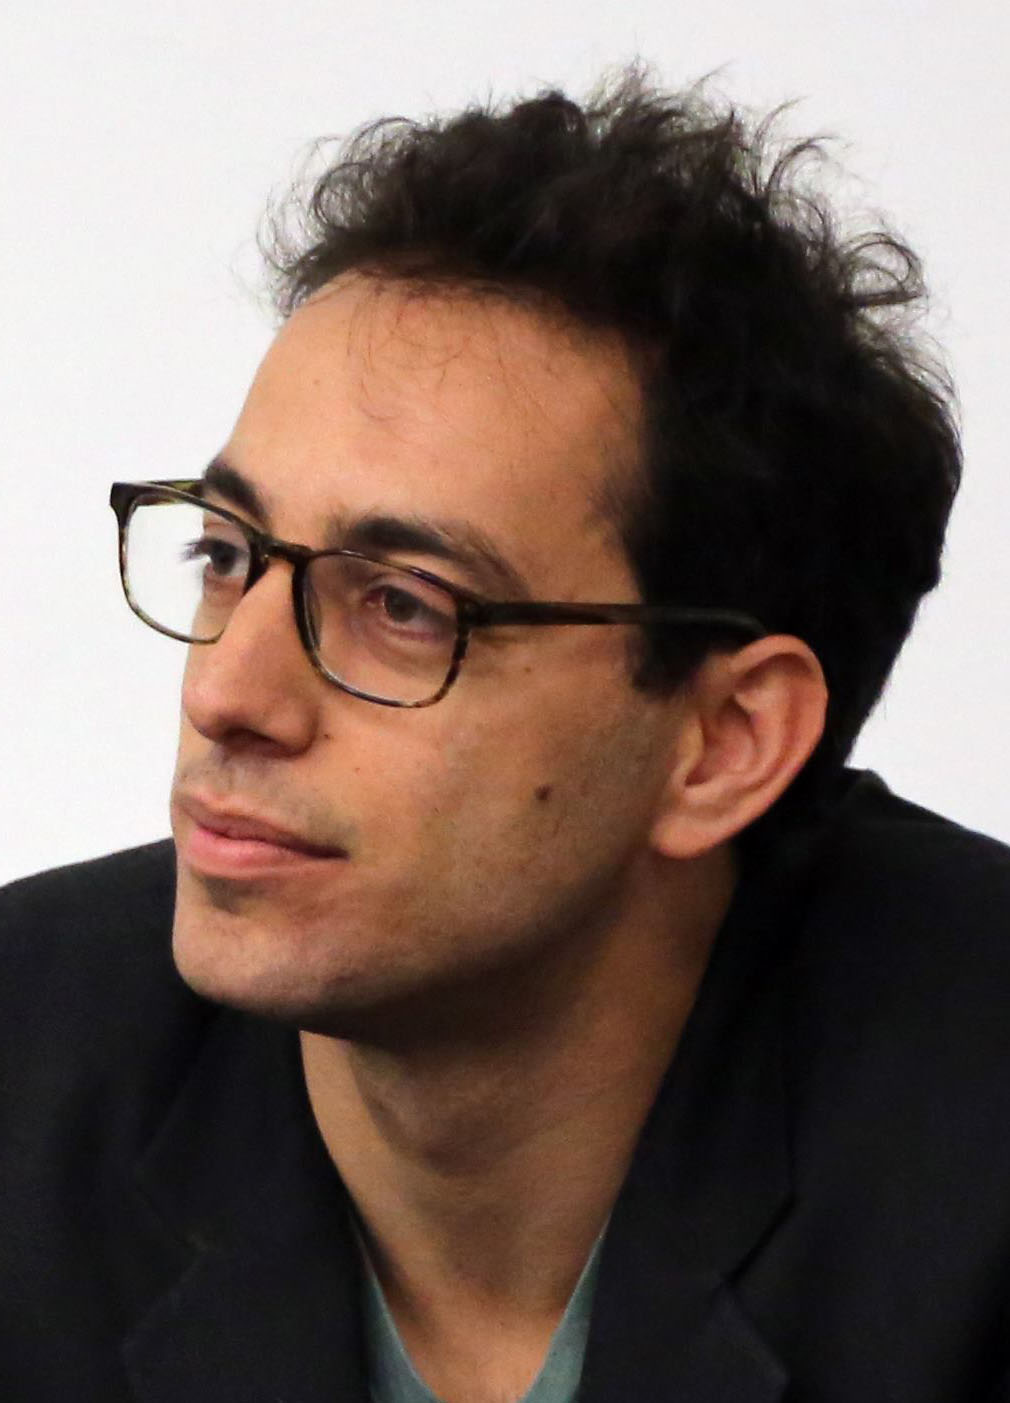 Alex Fattal, Assistant Professor of Communications and Anthropology